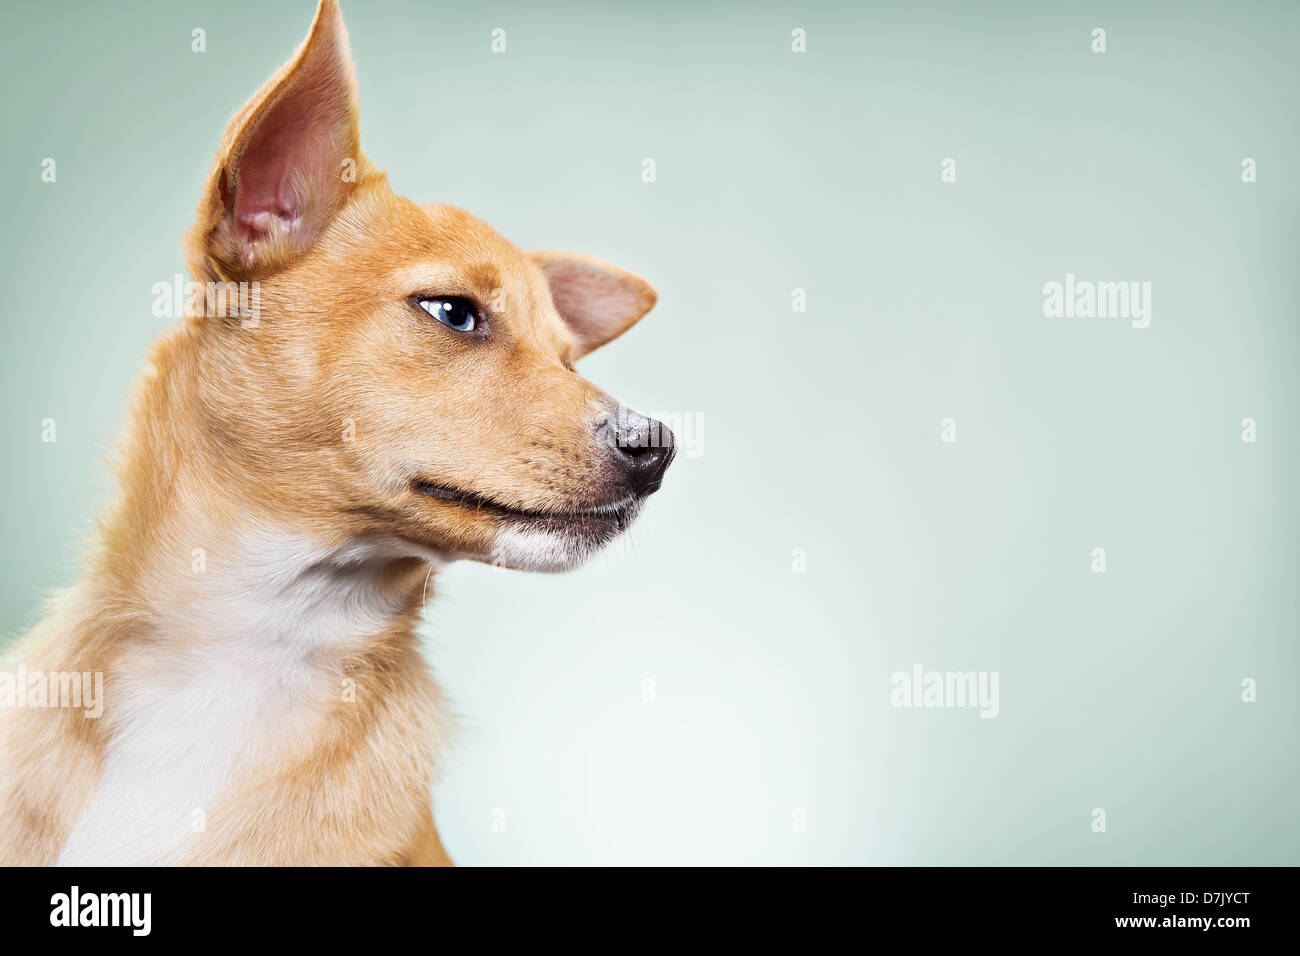 A portrait of Basenji mix breed Chihuahua in studio against green backdrop - Stock Image